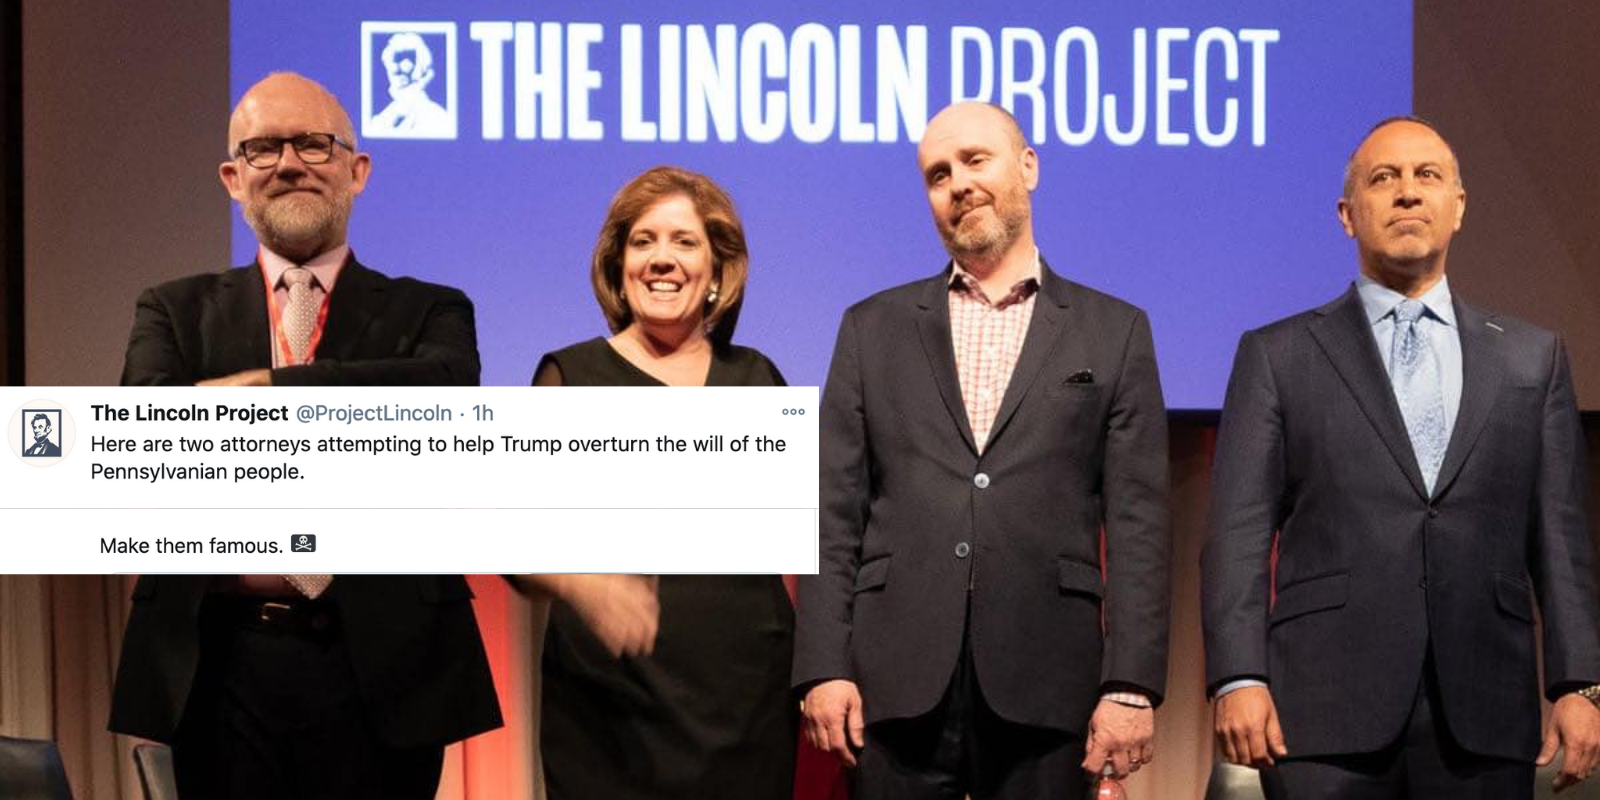 BREAKING: Lincoln Project doxxes two Trump lawyers, vows to dox their clients too